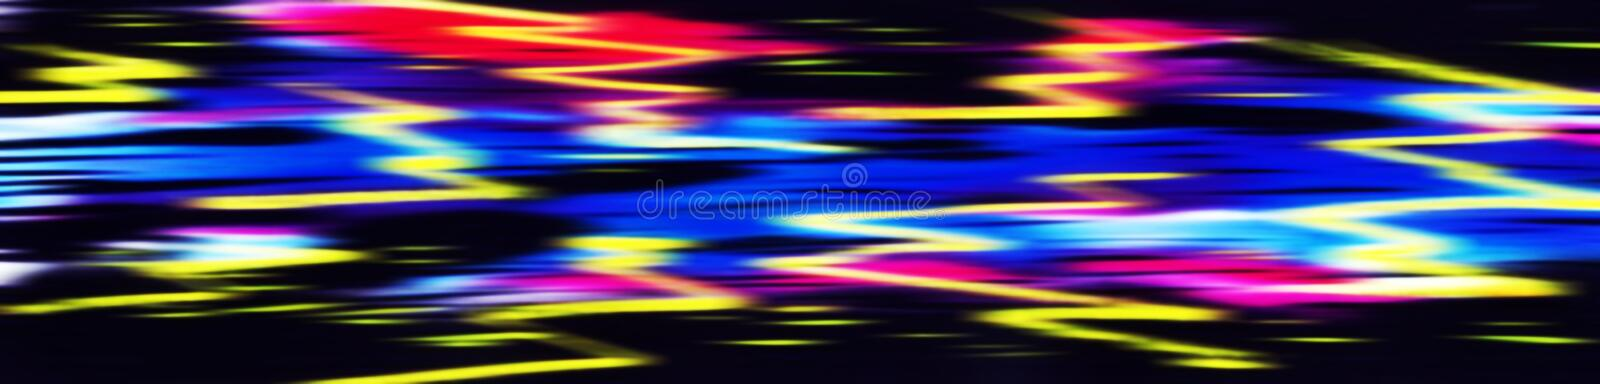 Illustration and Painting royalty free stock photos